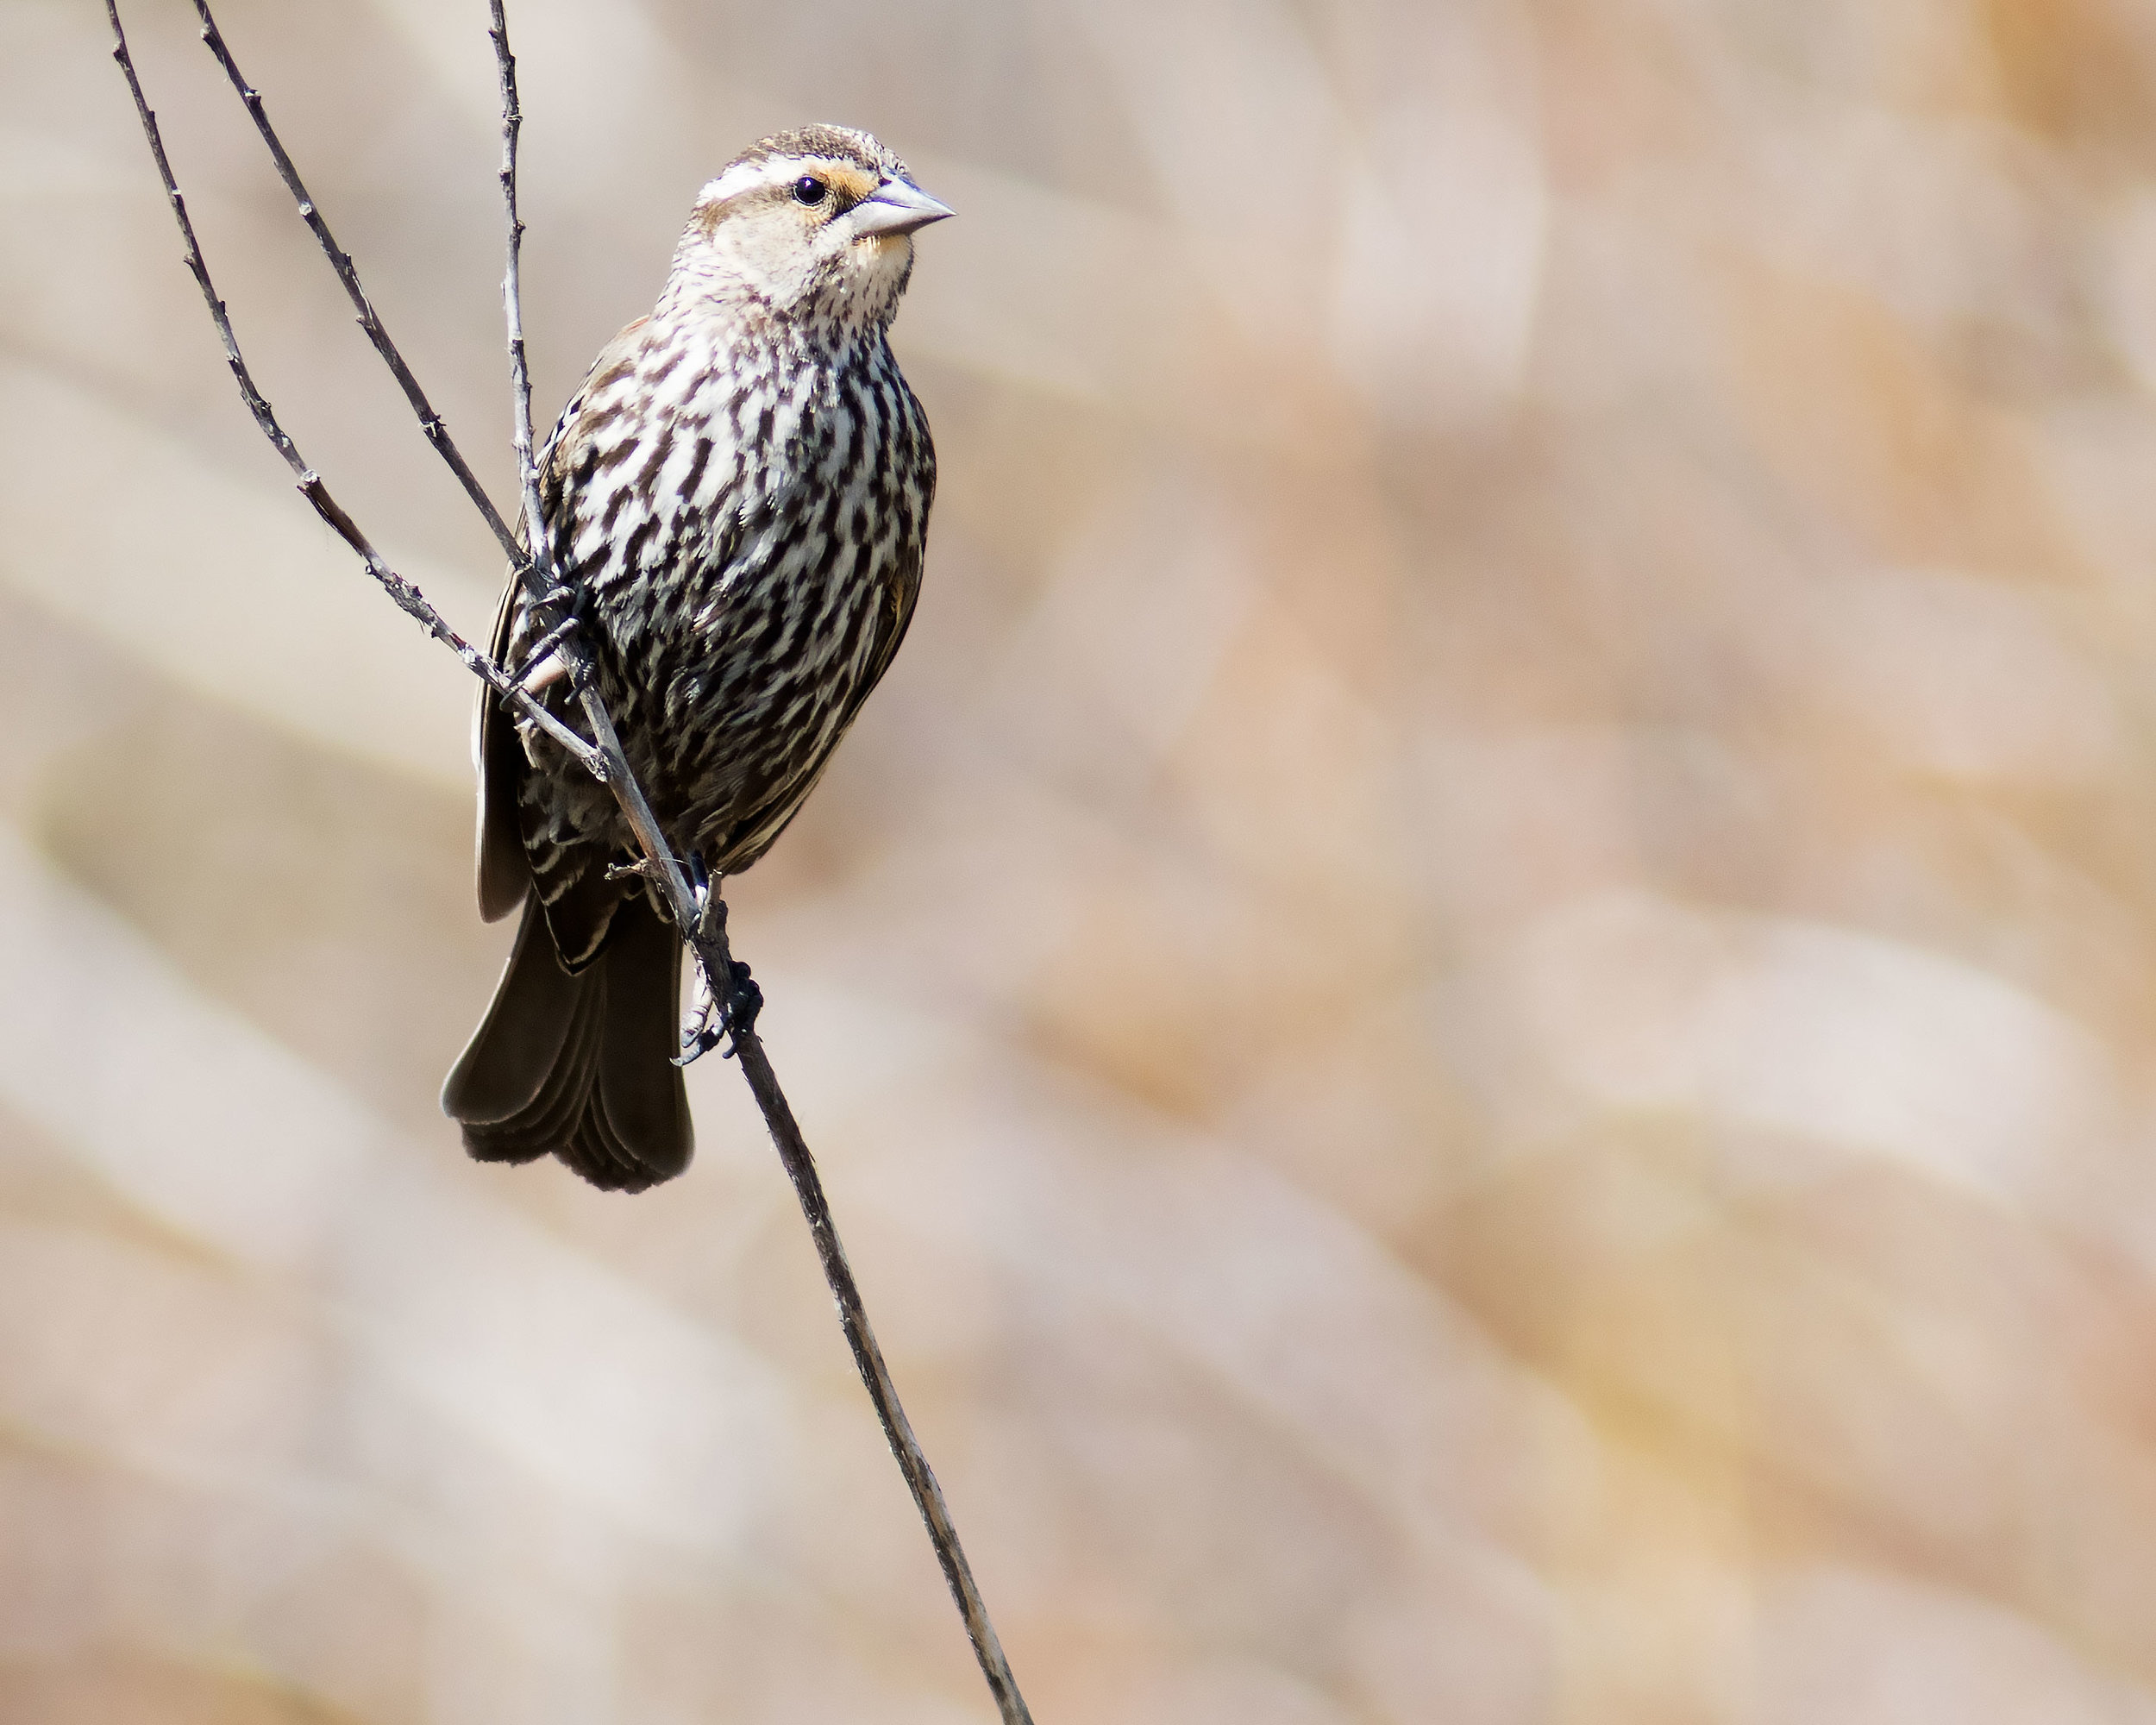 Female Redwinged Blackbird